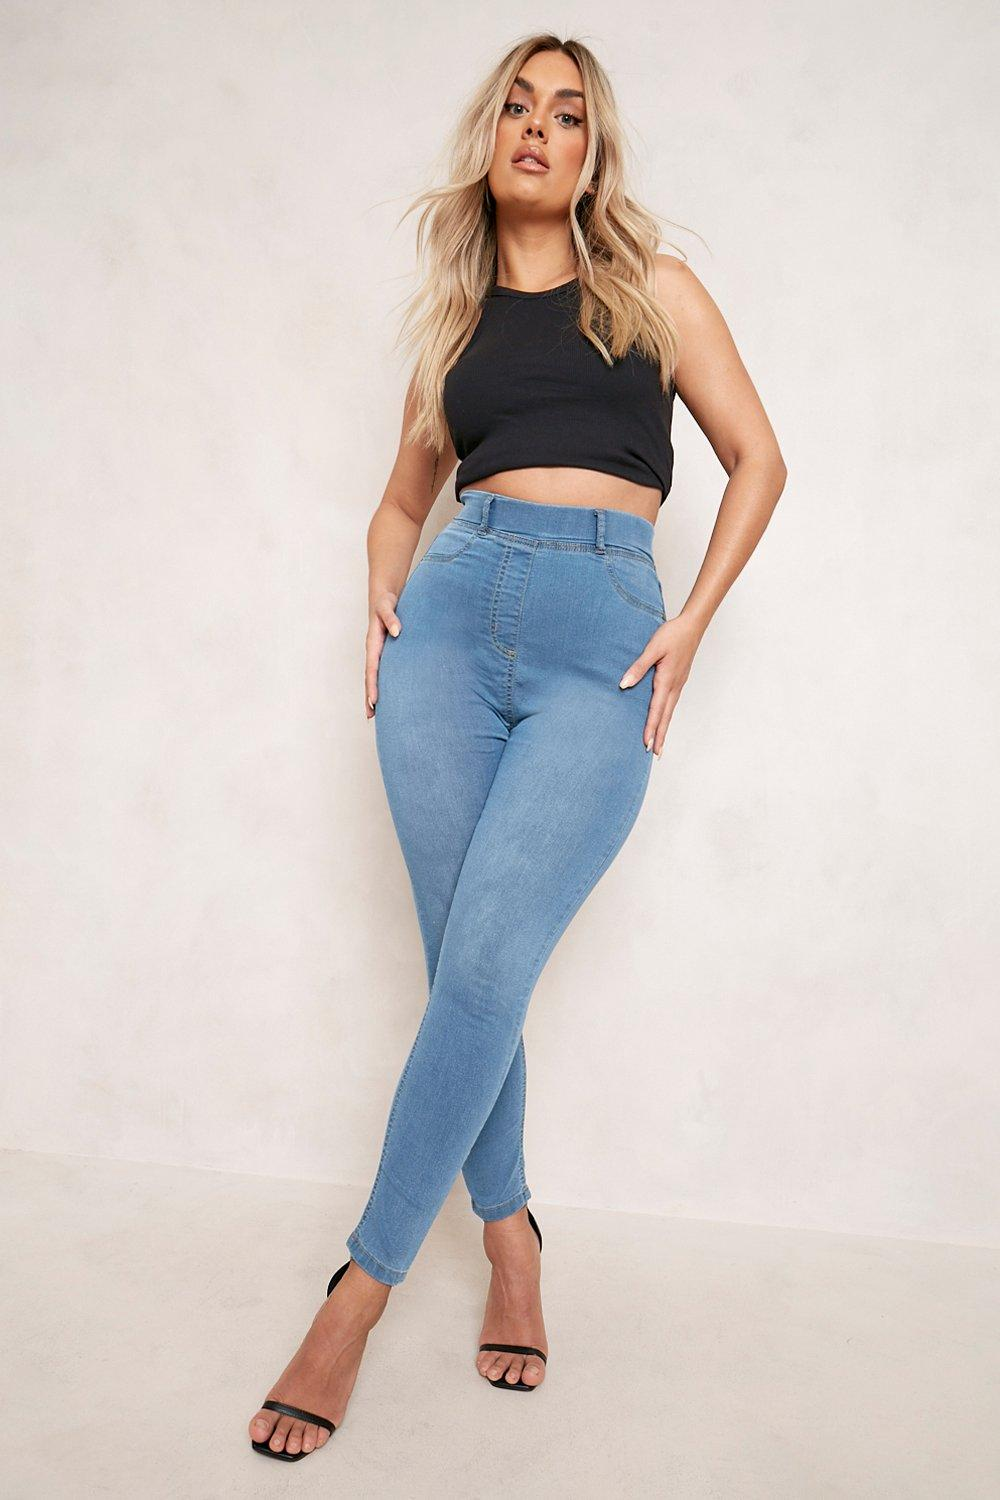 Jeggings Plus Jeggings claro azul básicos básicos Plus 4w5xqTz0